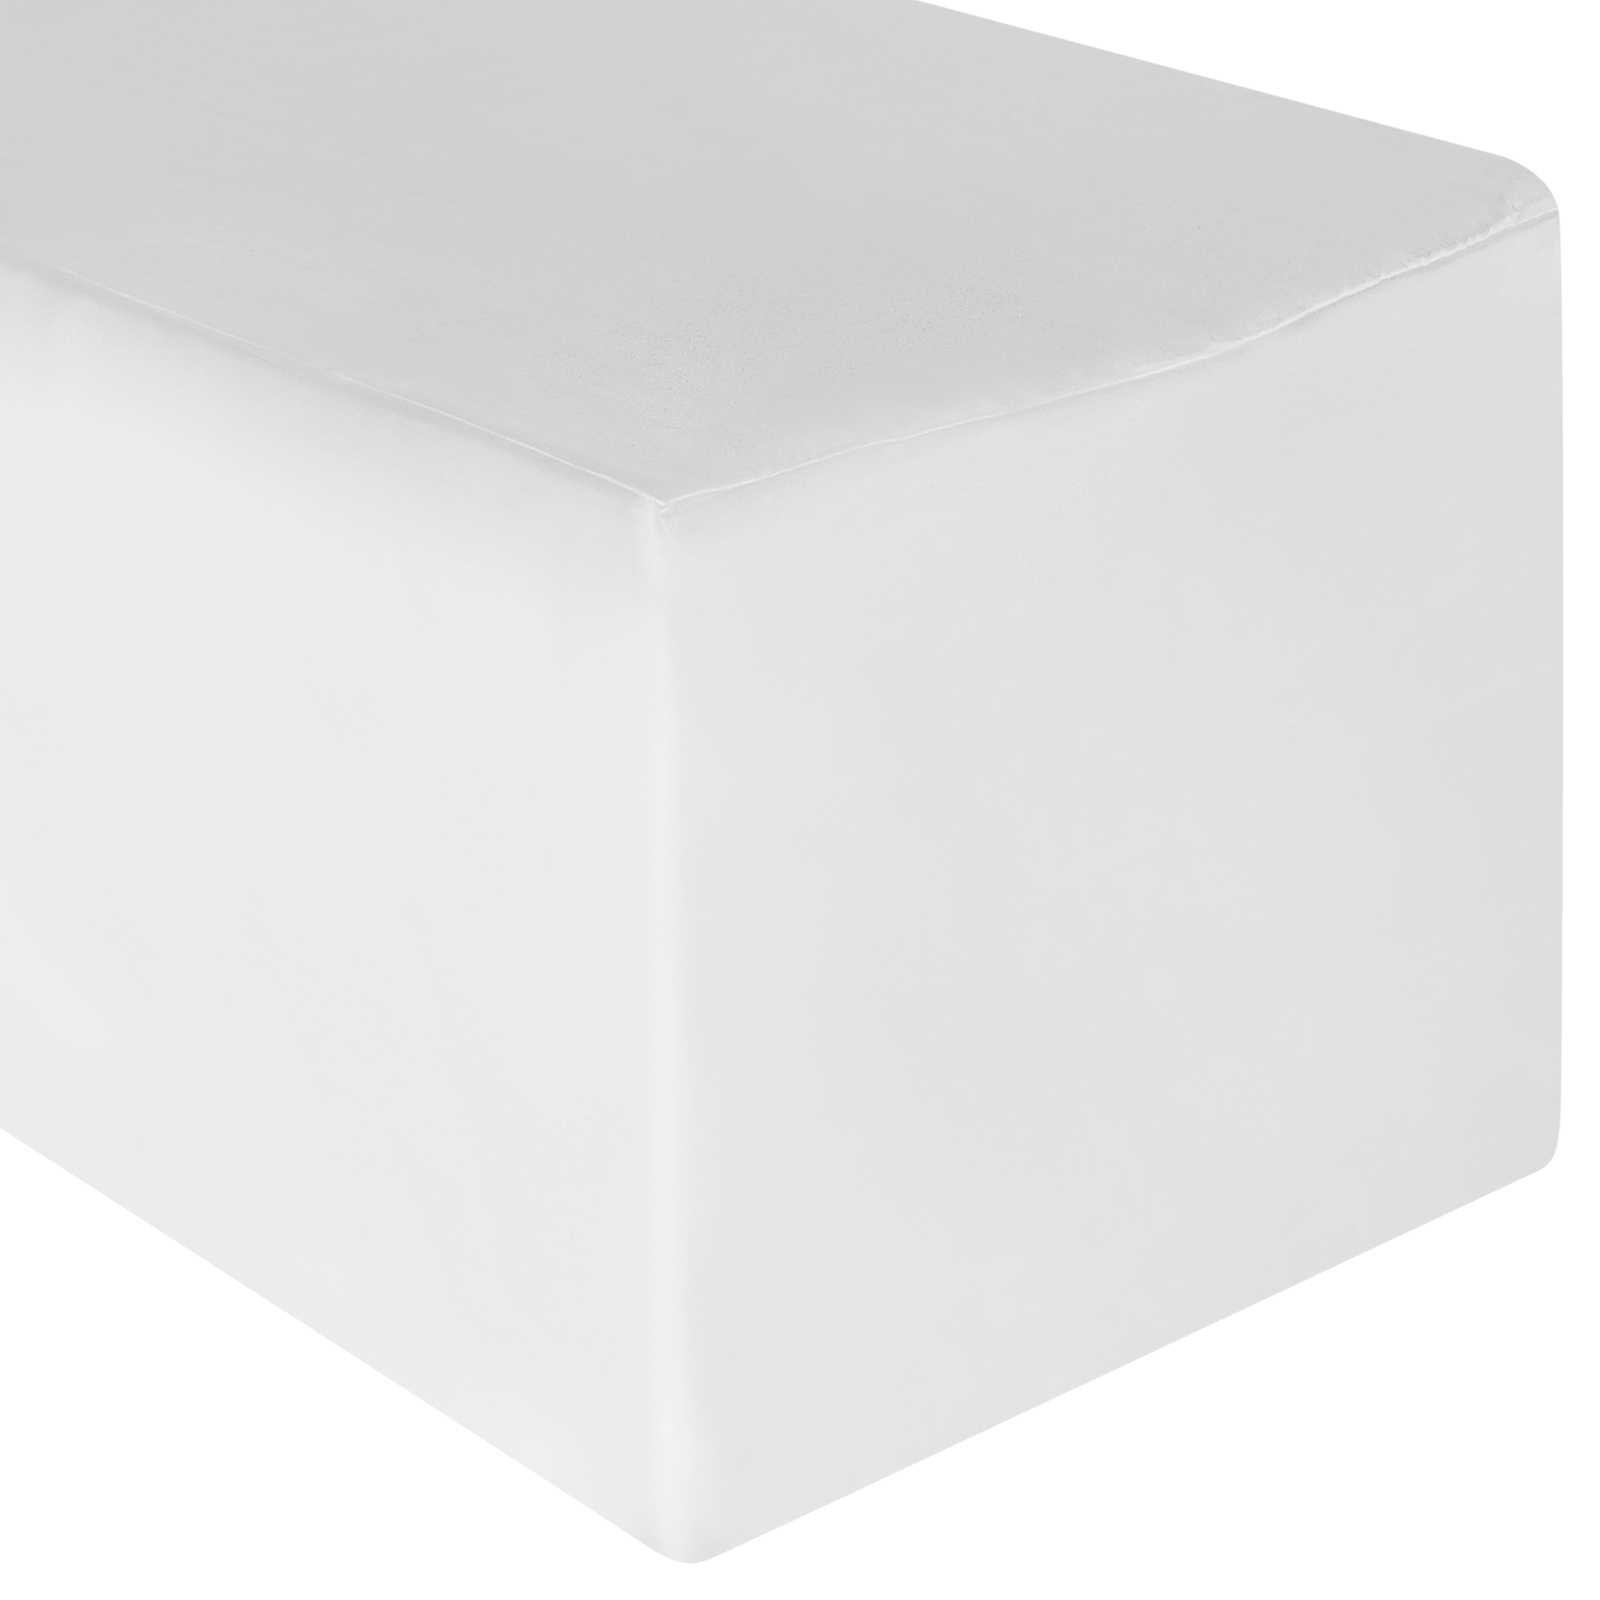 Lann's Linens - 10 Pack of 8' Rectangular White Polyester Fitted Tablecloth Covers for Weddings, Banquets, or Restaurants (96'' x 30'')